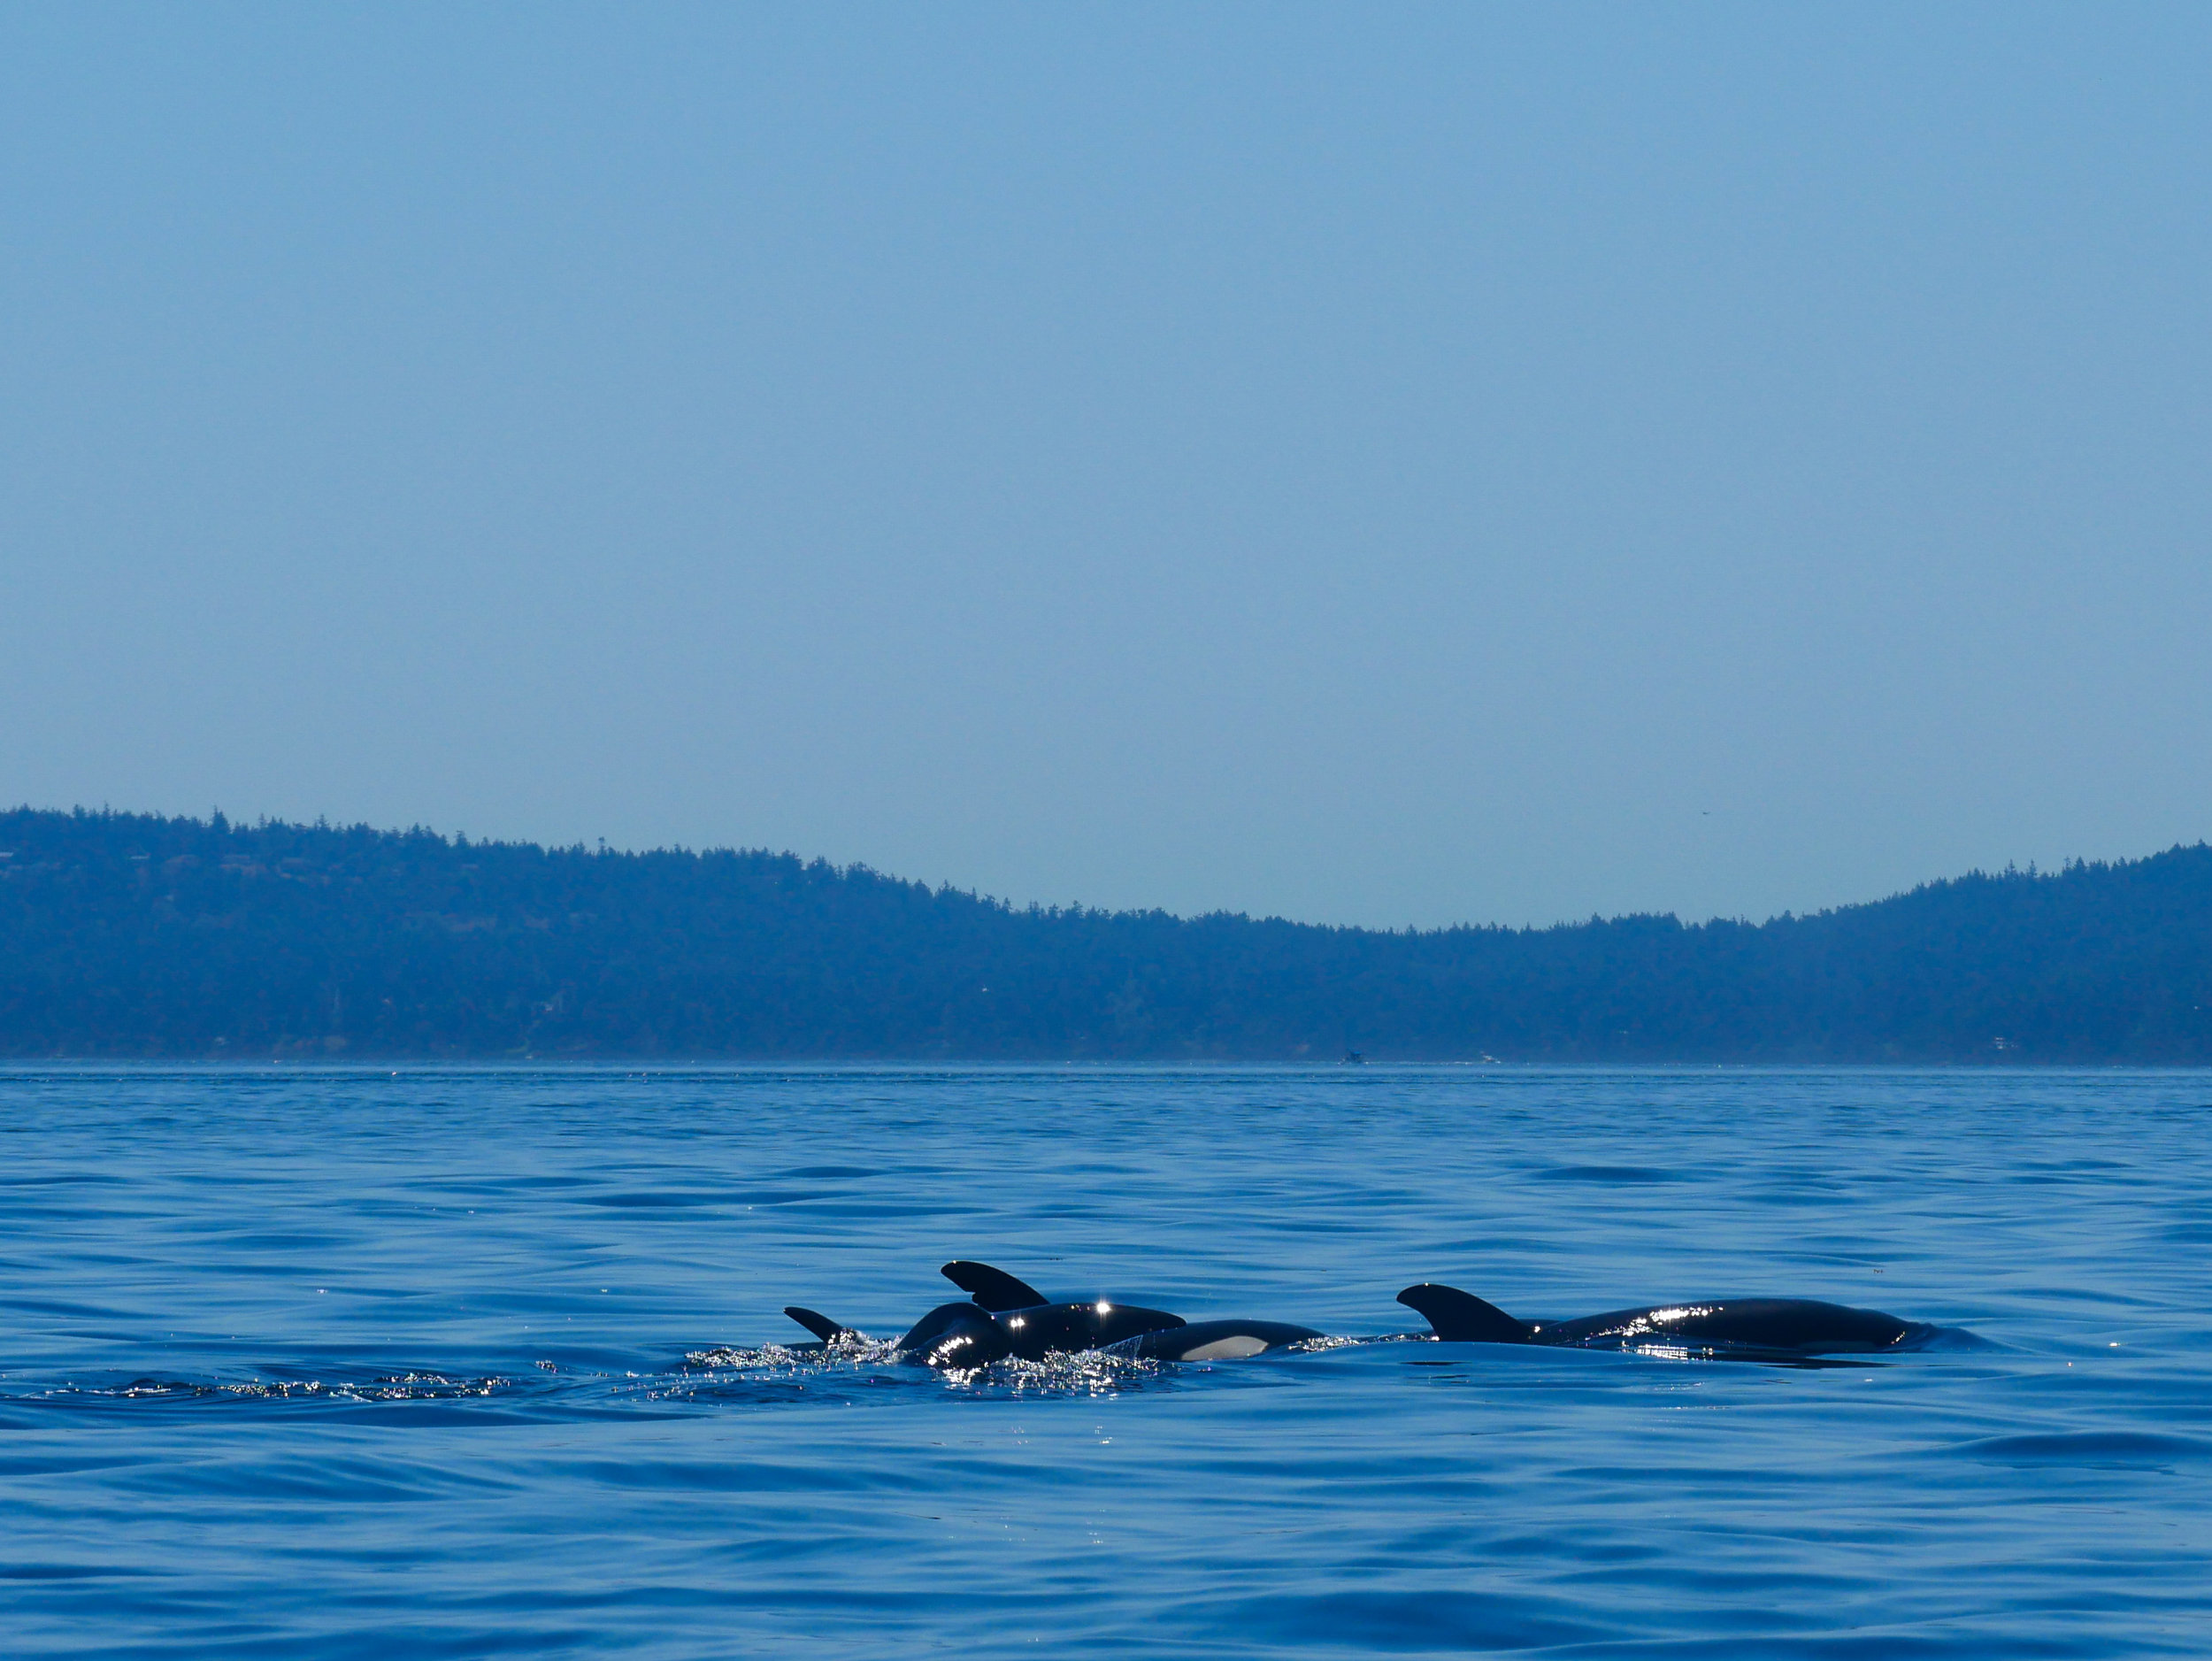 Check out the nick on the dorsal fin in the back! Photo by Val Watson.